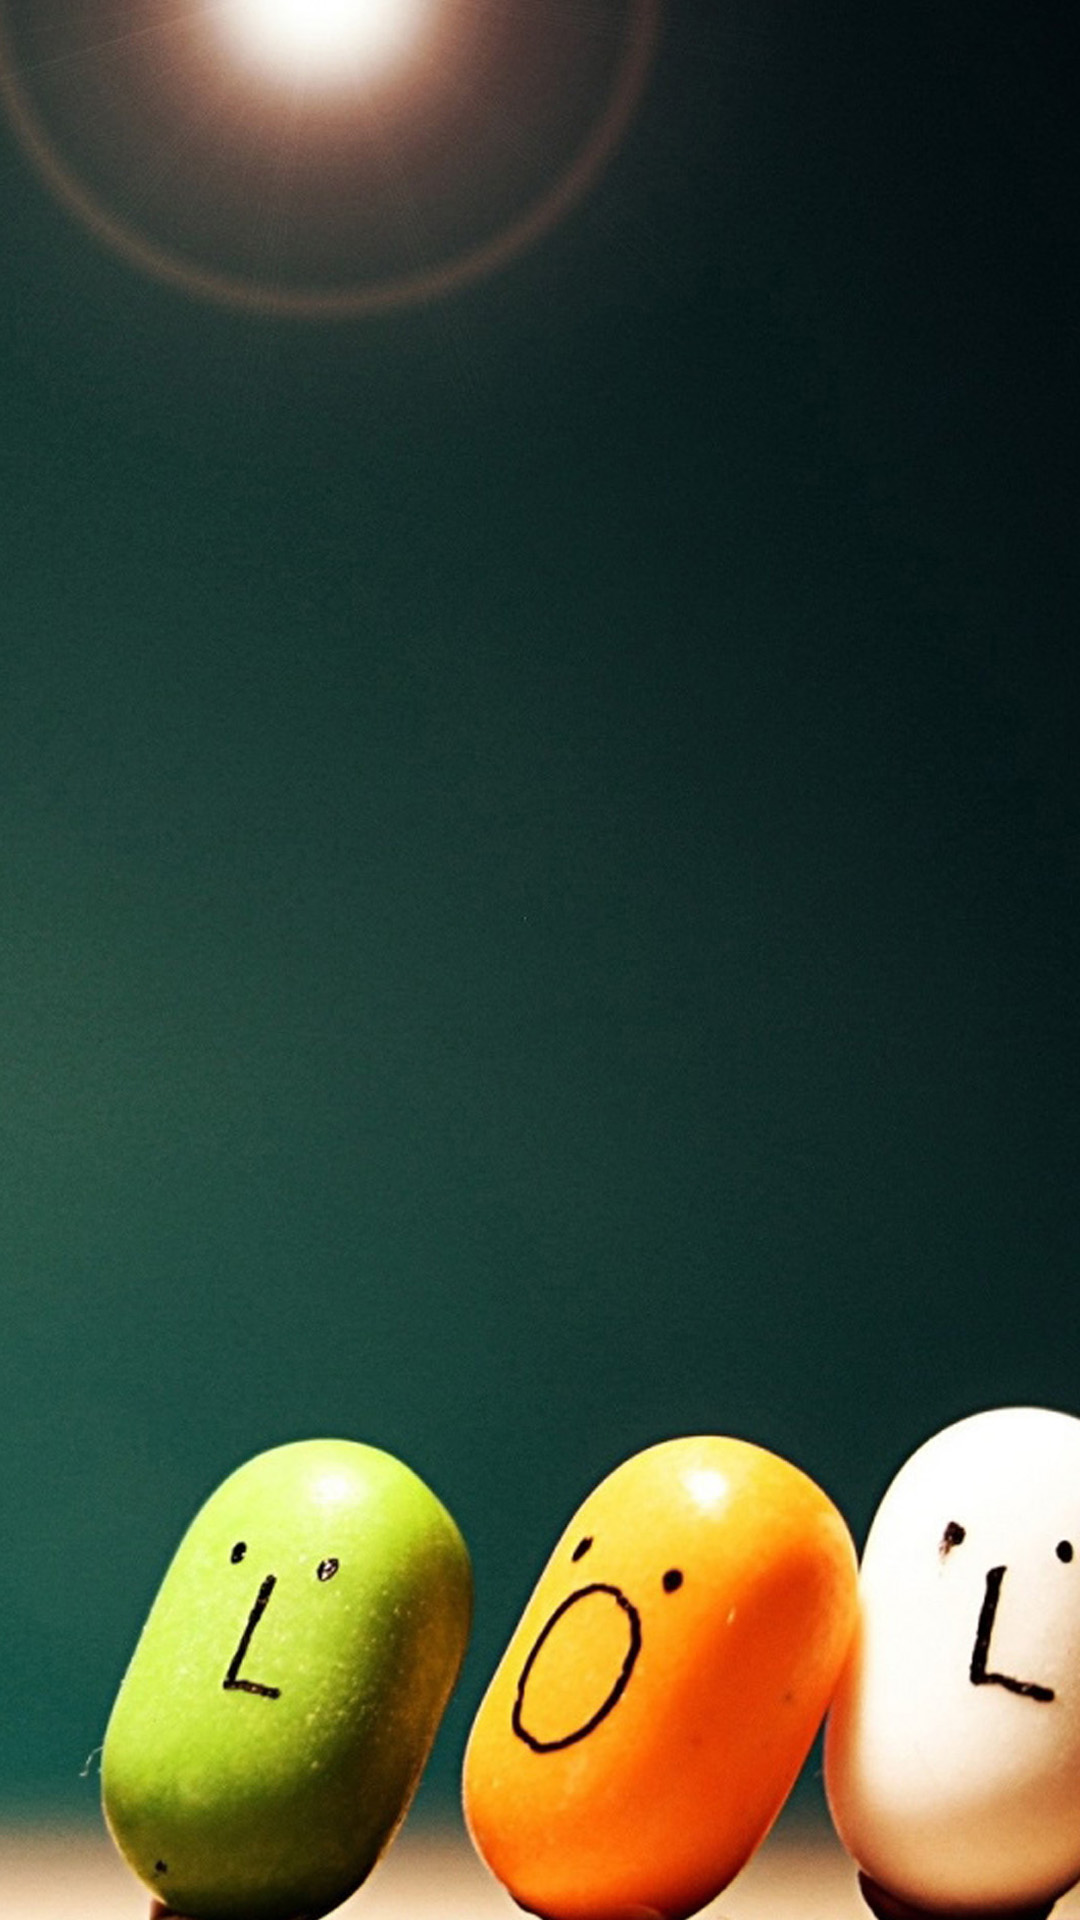 Lg G2 Wallpaper Full HD